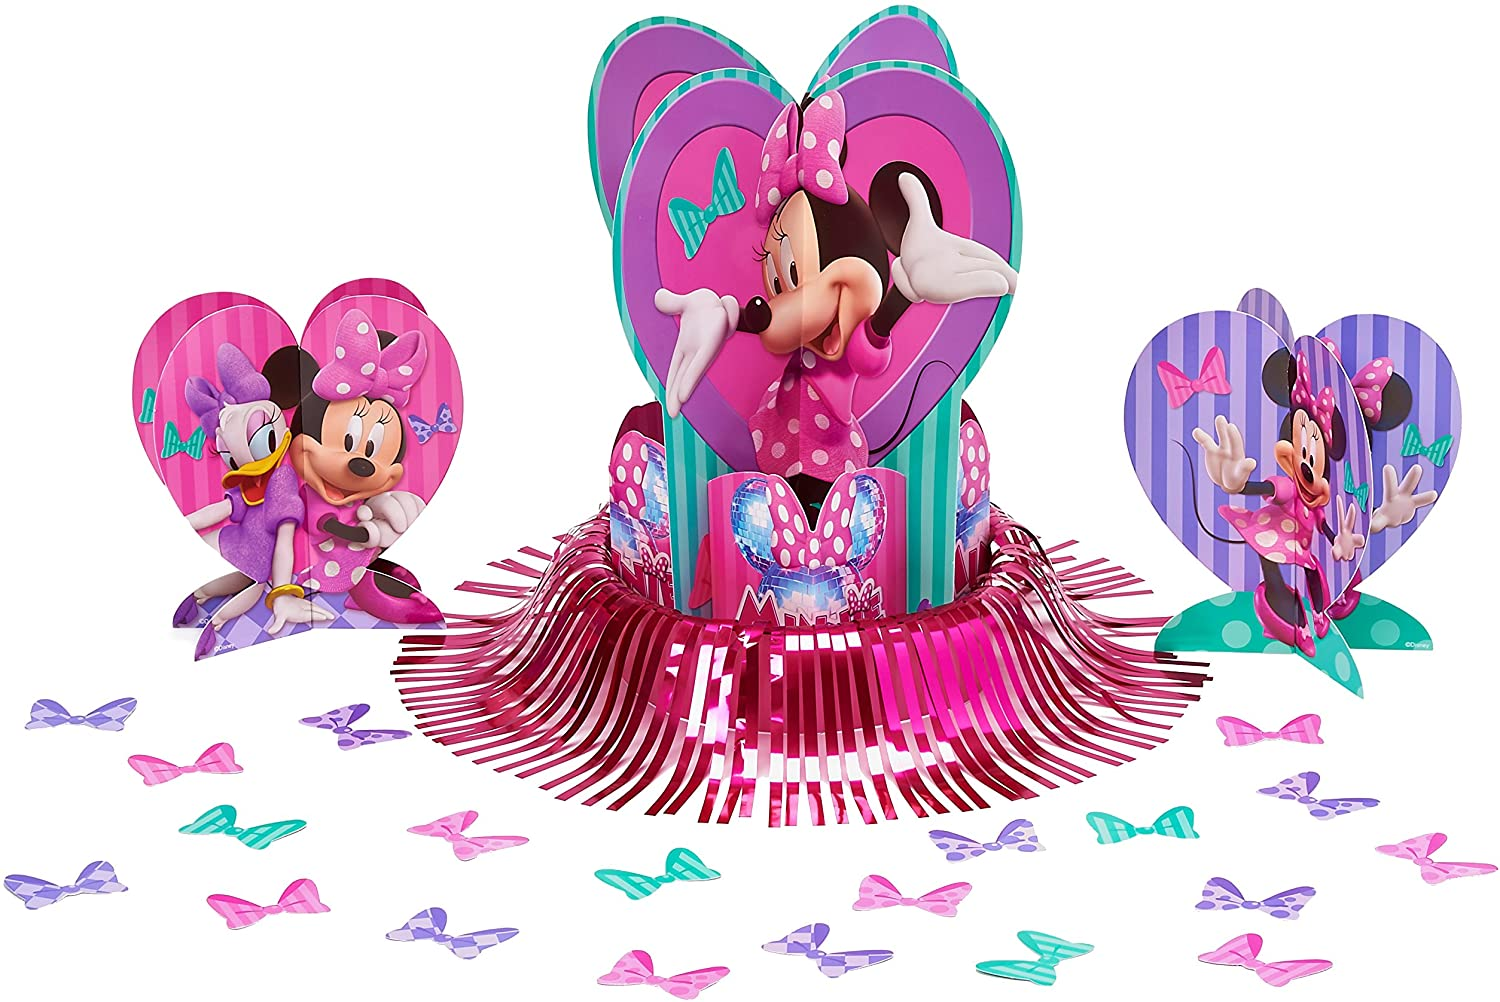 American Greetings Minnie Mouse Party Supplies, Table Decorations, 23-Count